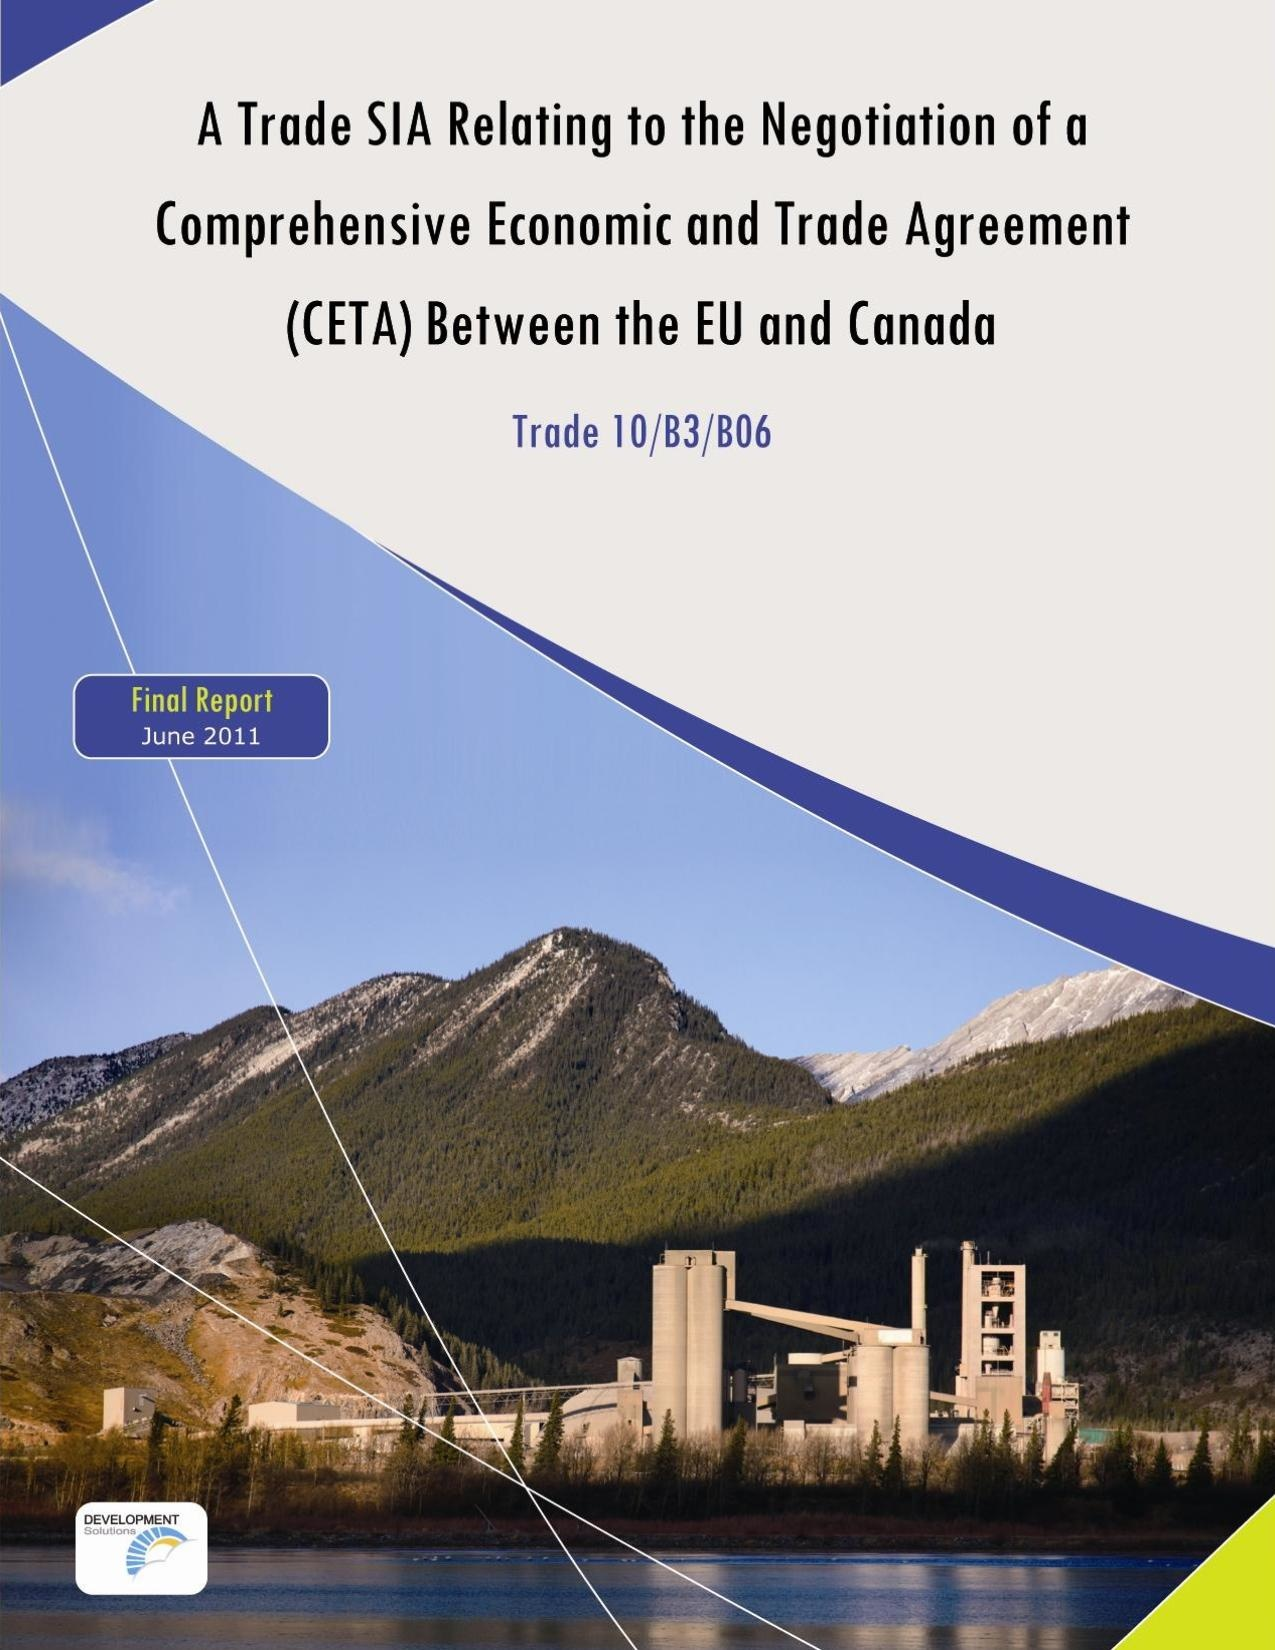 CETA - A Trade SIA Relating to the Negotiation of a CETA Between the EU and Canada.pdf